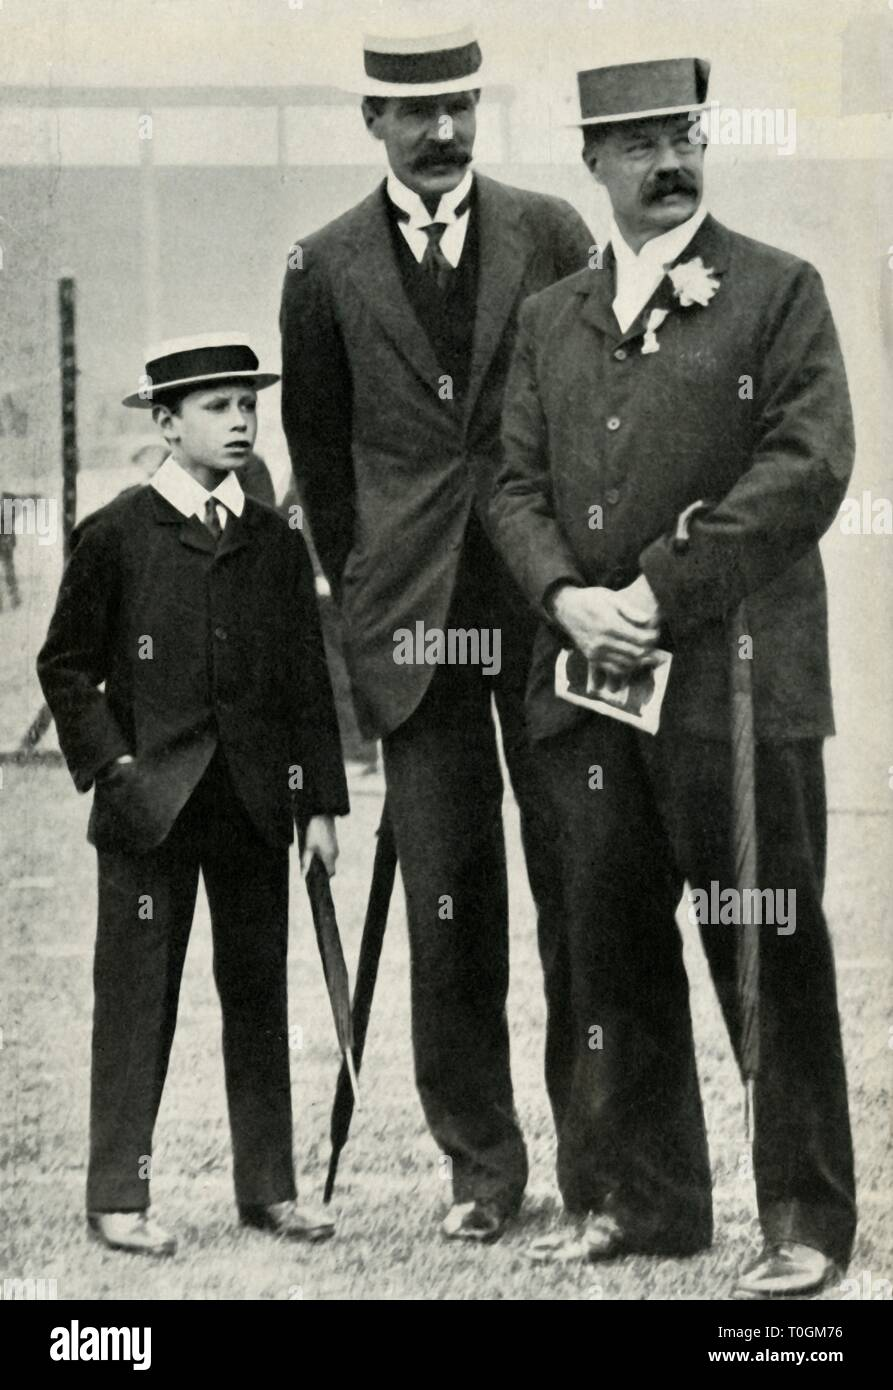 """Prince Albert with his tutor and Lord Desborough, 1908, (1947). Prince Albert, (the future King George VI 1895-1952), attending an athletics meeting aged 13, with his tutor Mr Henry Peter Hansell, and Lord Desborough, British athlete, sportsman and politician. From """"The Saturday Book"""", Seventh Year, edited by Leonard Russell. [Hutchinson, St. Albans, 1947] - Stock Image"""